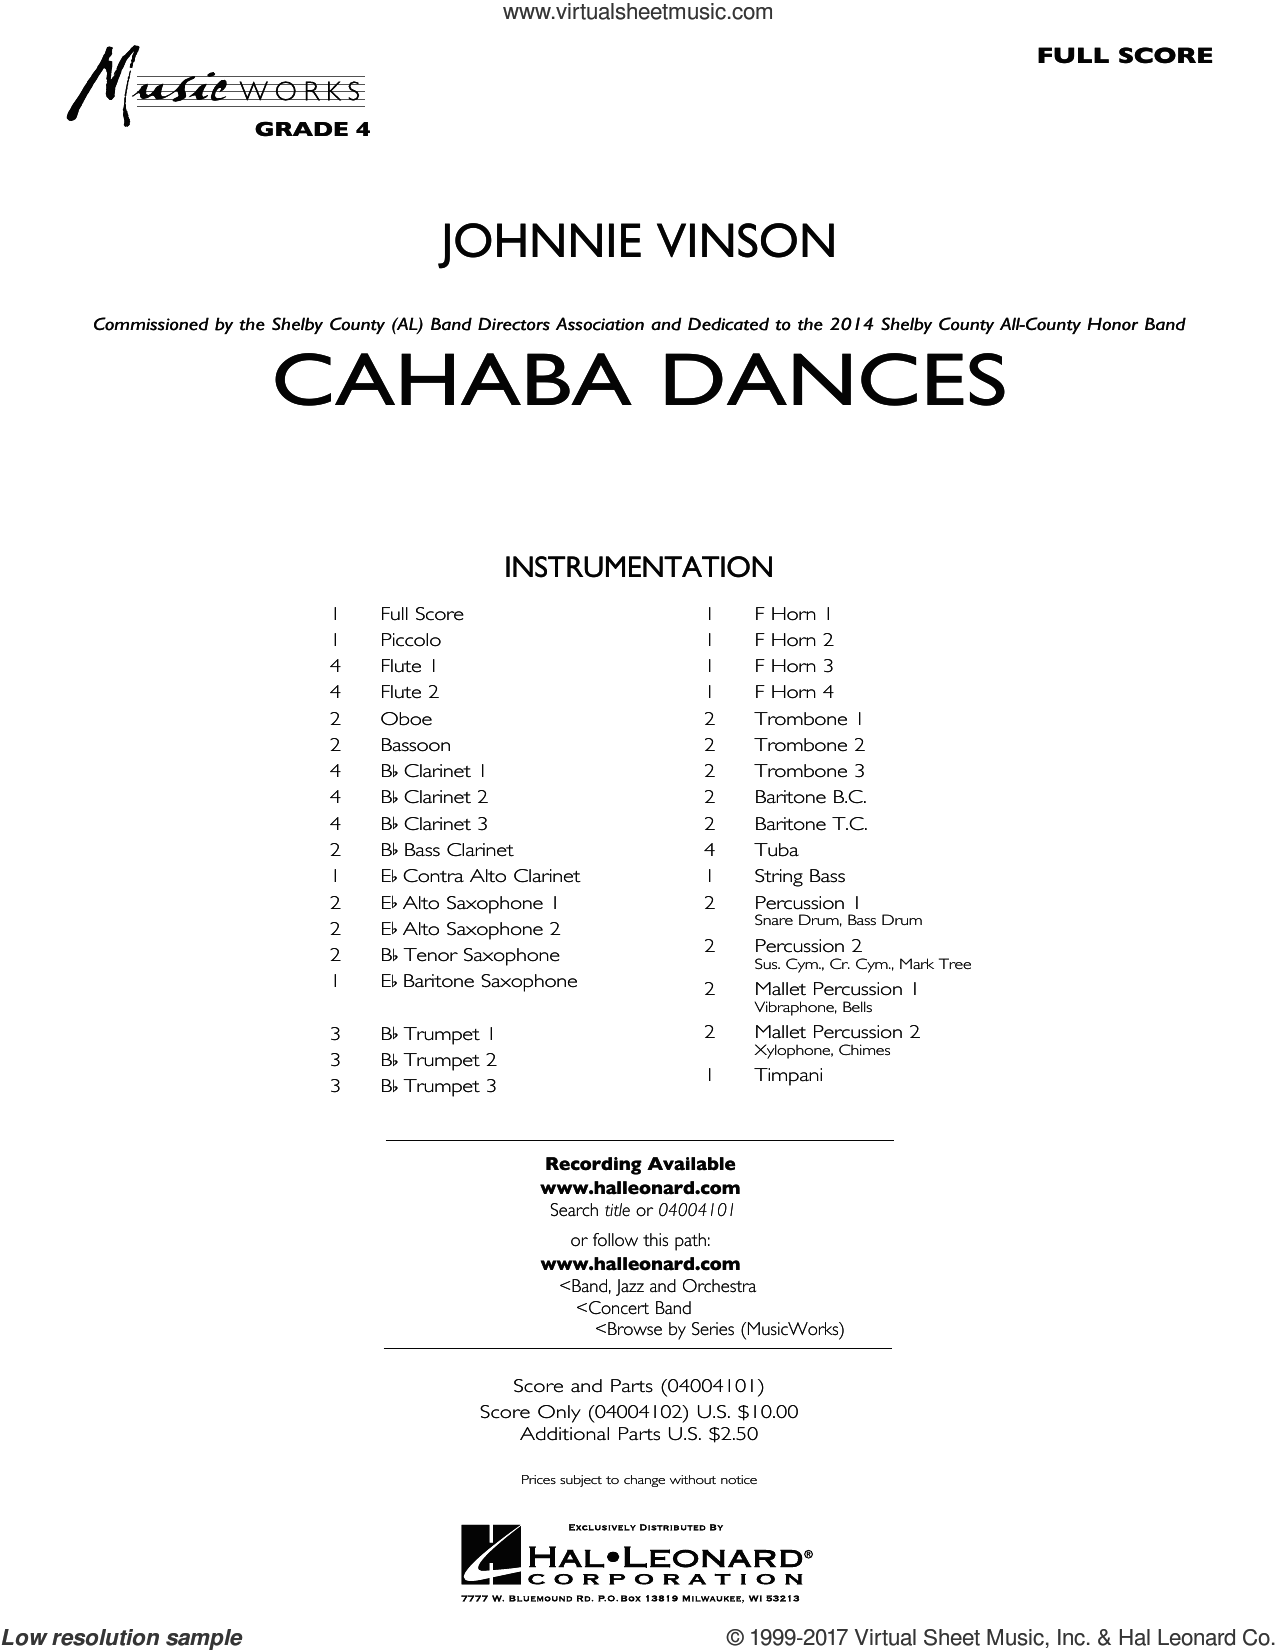 Cahaba Dances (COMPLETE) sheet music for concert band by Johnnie Vinson, intermediate skill level